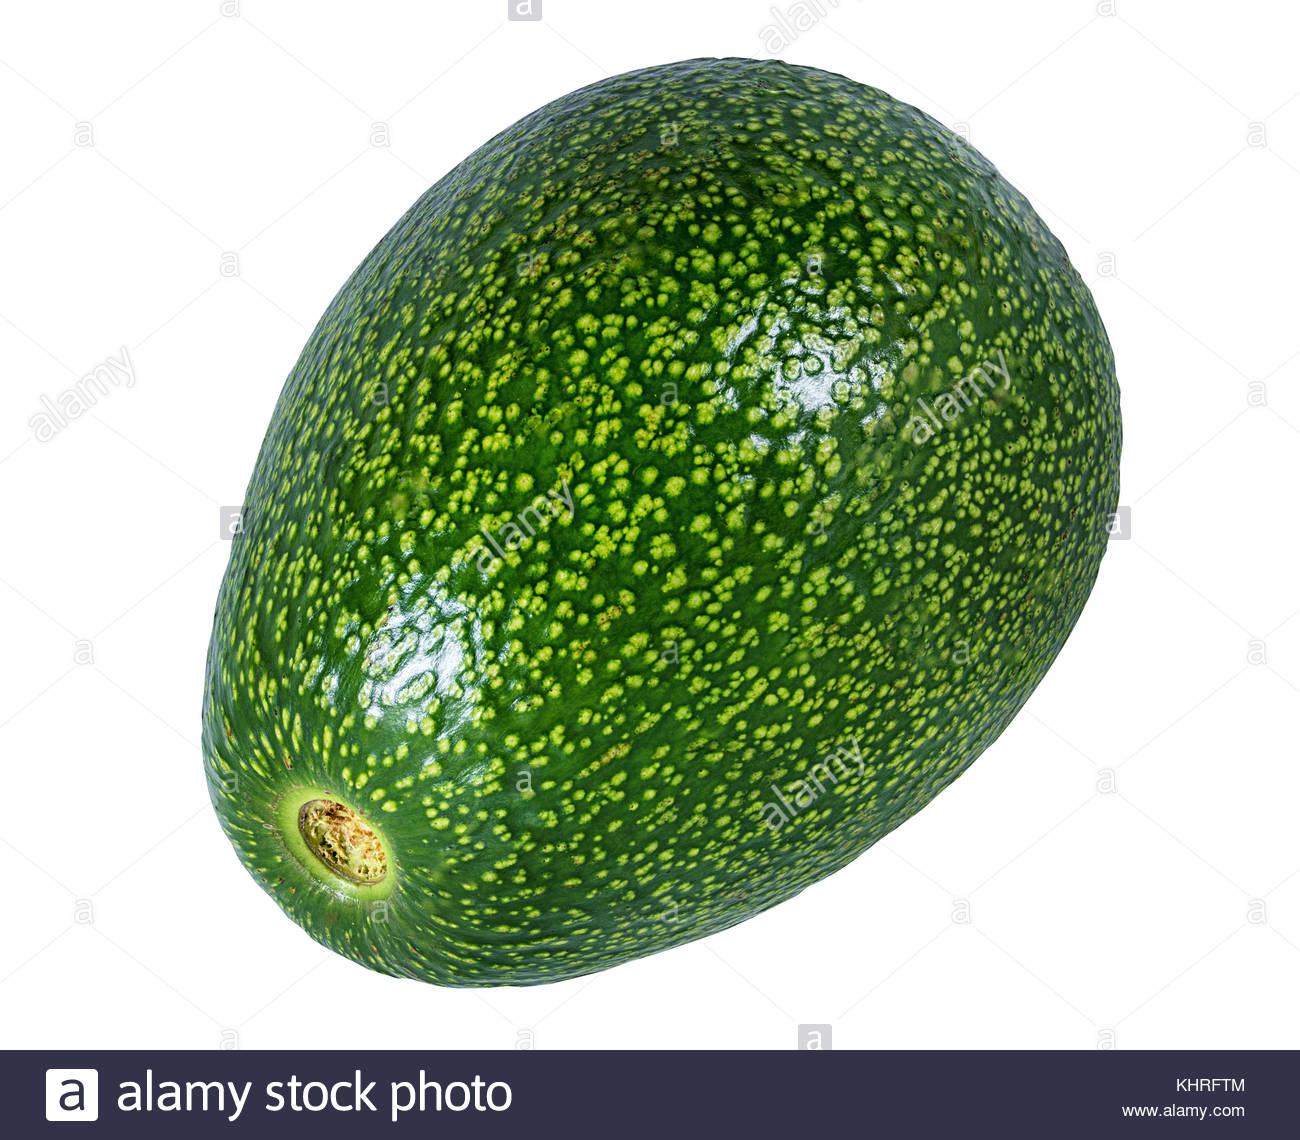 Fresh avocado isolated on white background with clipping path 1300x1140